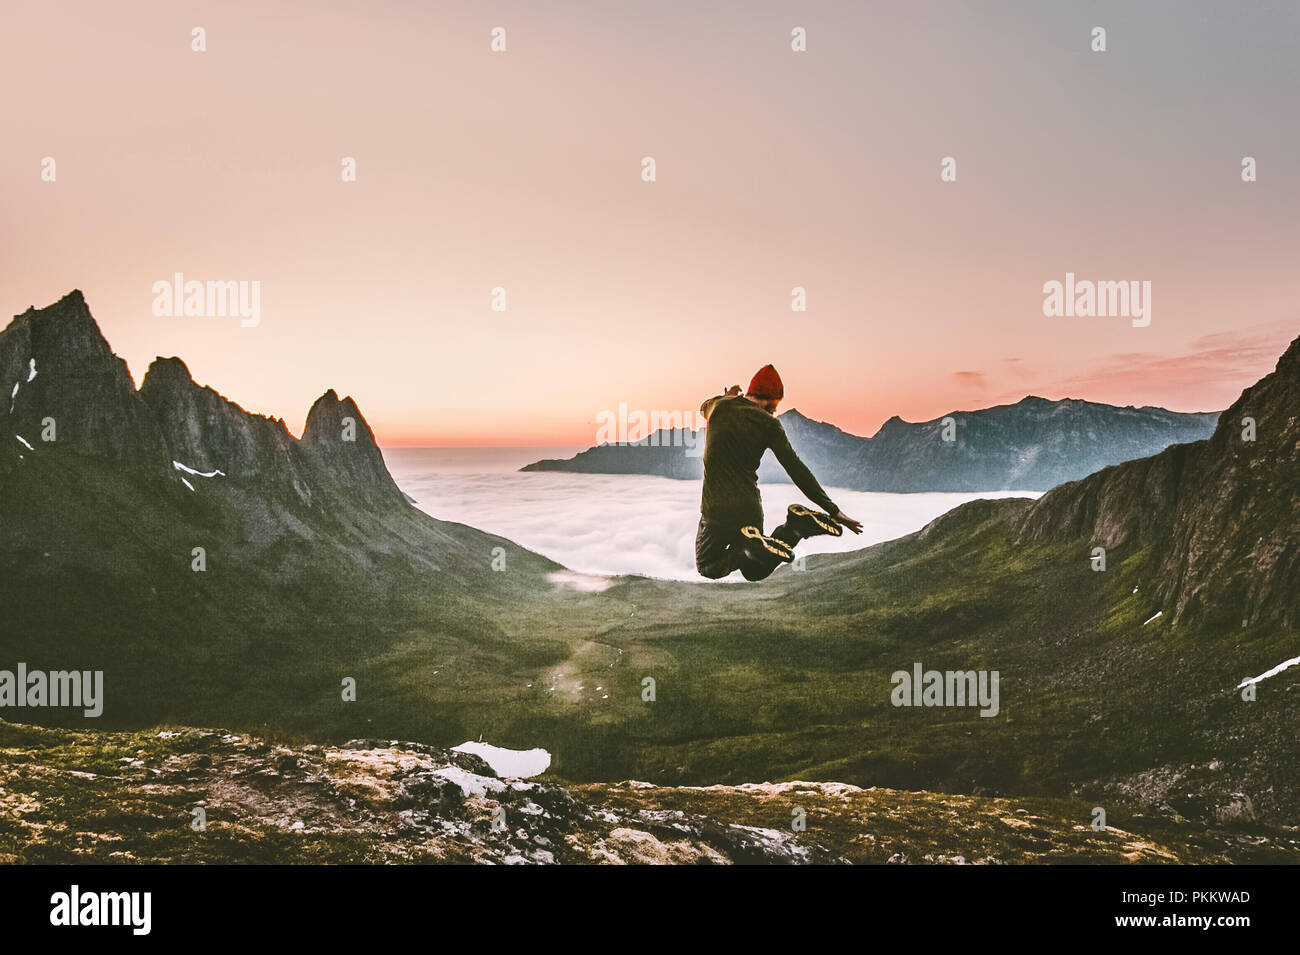 Happy man jumping outdoor adventure concept de vie Voyage Vacances actives en Norvège montagnes coucher de succès et émotions euphorie fun Photo Stock